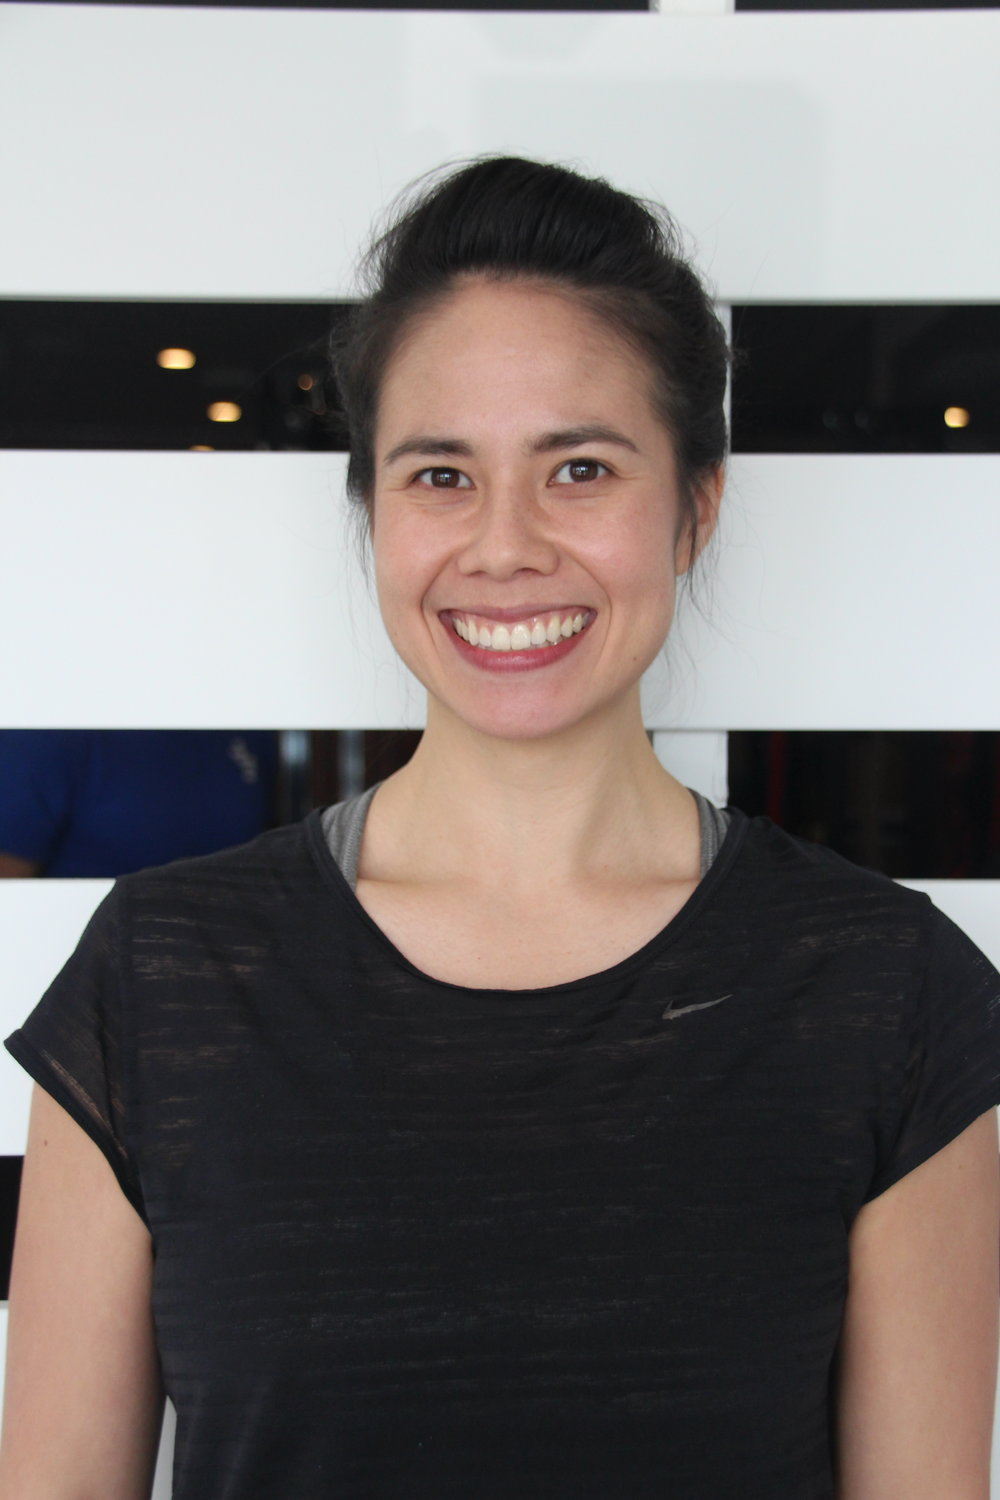 Jayde Woo(Port Coquitlam) - Jayde has additional training and experience working with vestibular patients, including concussion and neck-related sensorimotor deficits. She is currently working towards her doctorate in physical therapy.